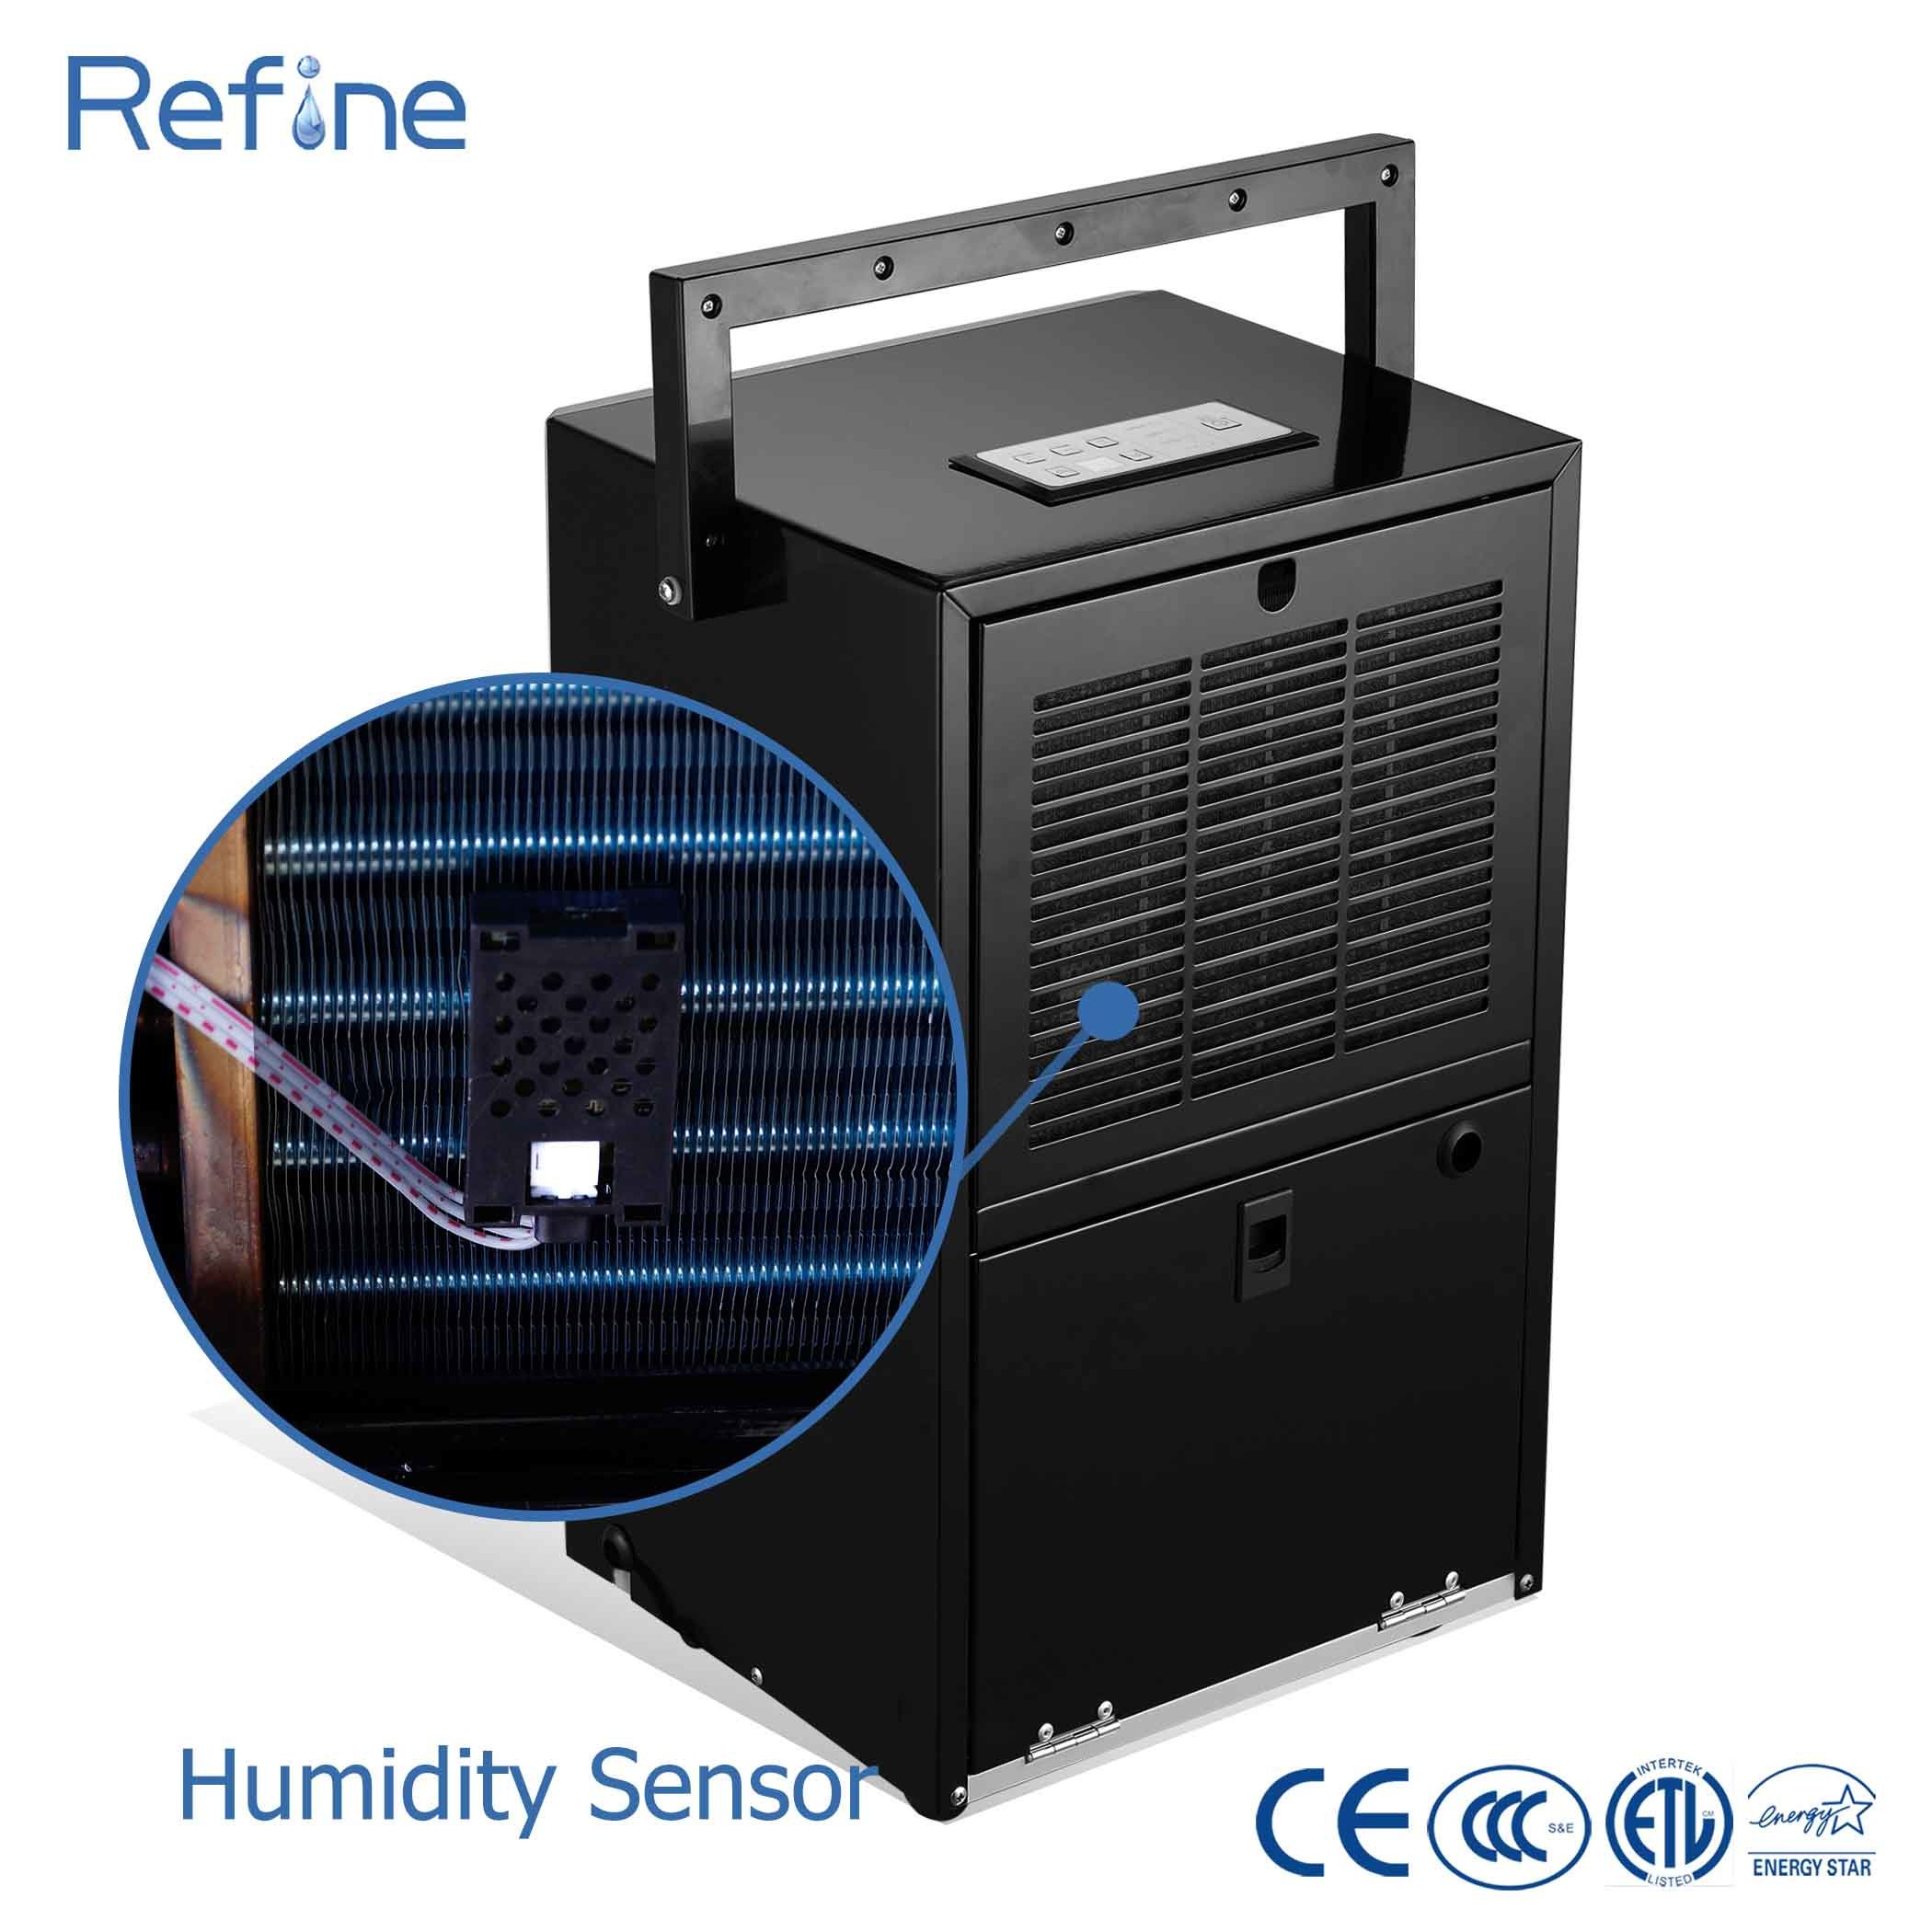 Image Result For Rent A Dehumidifier